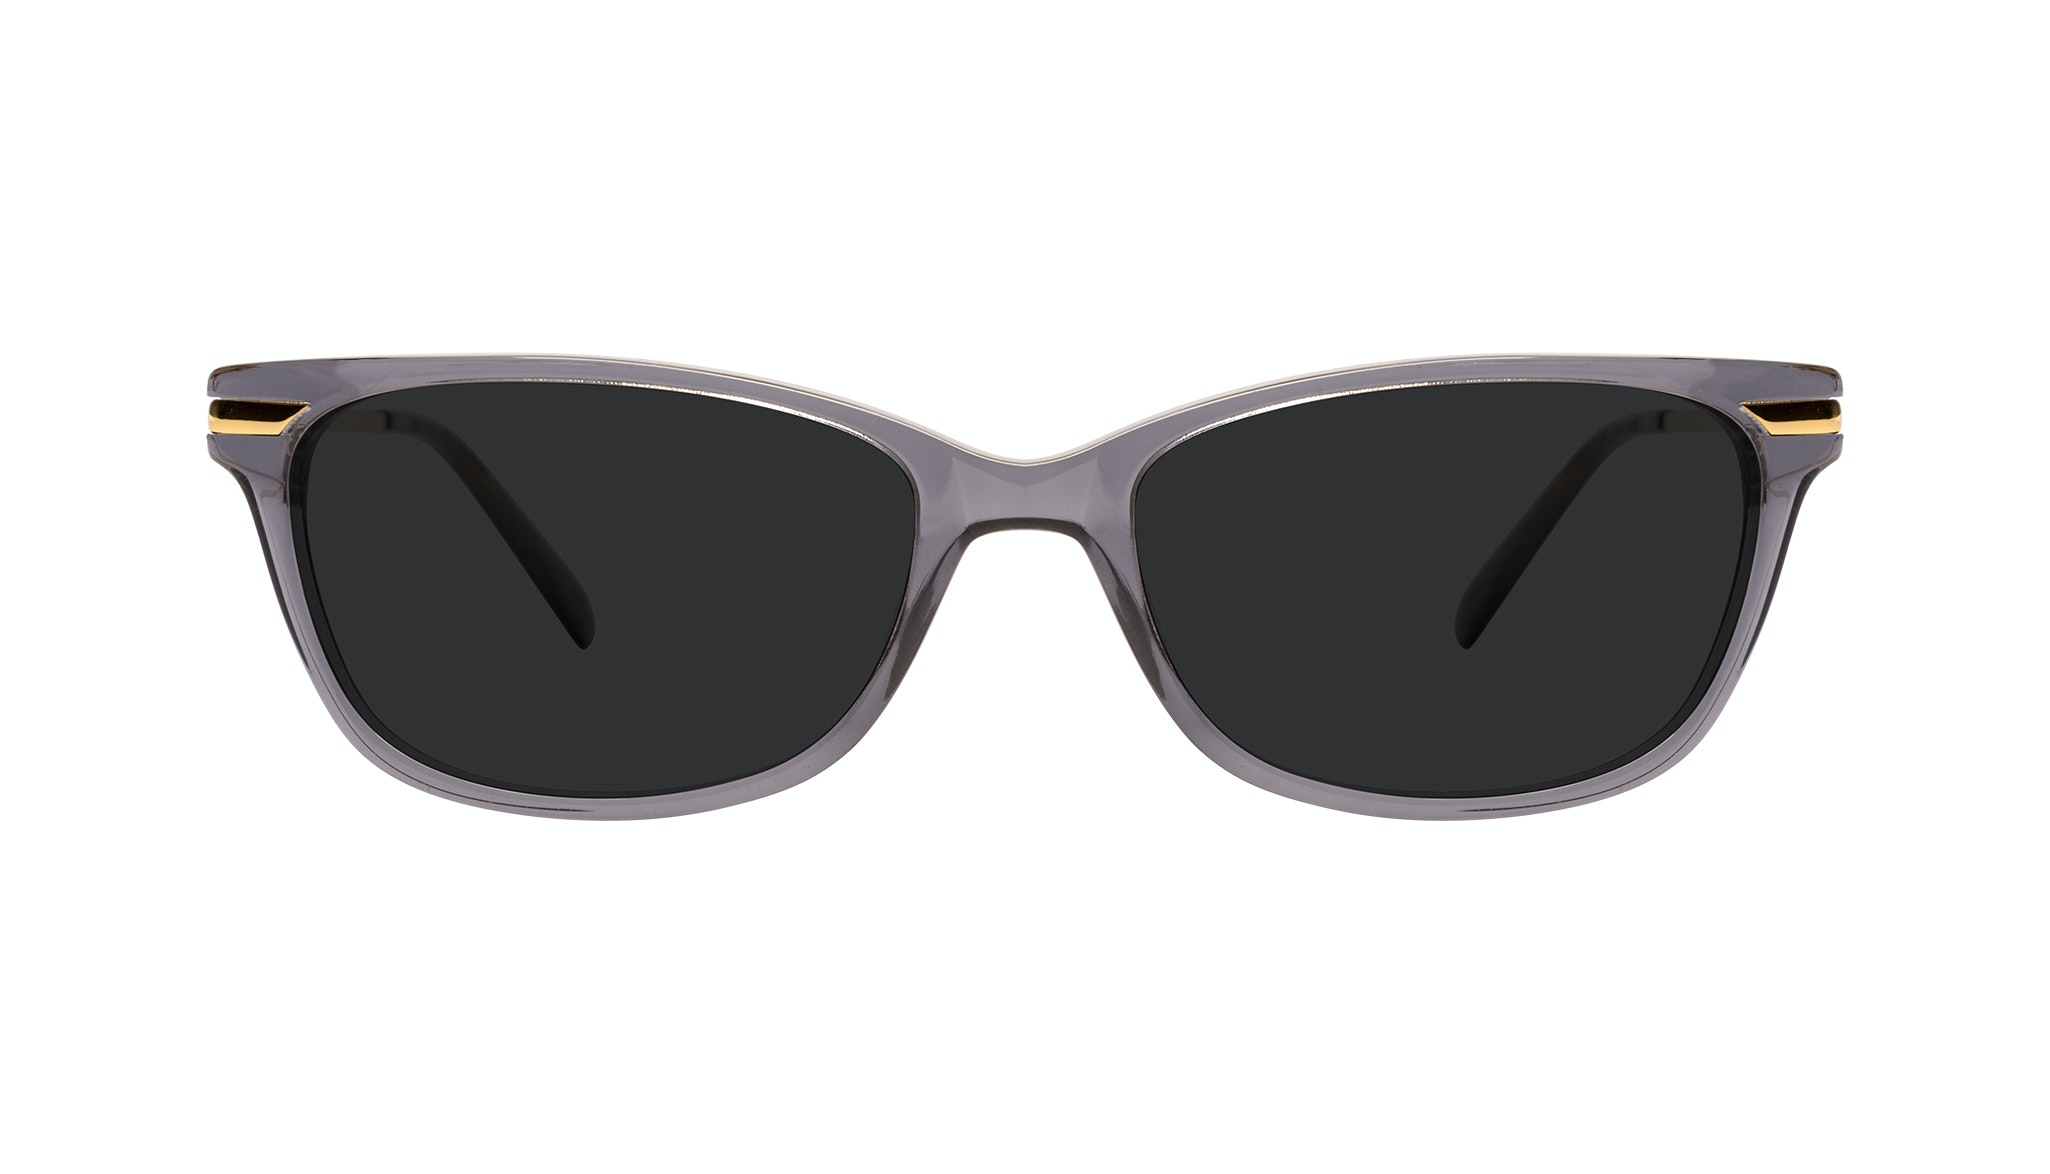 Affordable Fashion Glasses Rectangle Sunglasses Women Comet Plus Gold Shadow Front